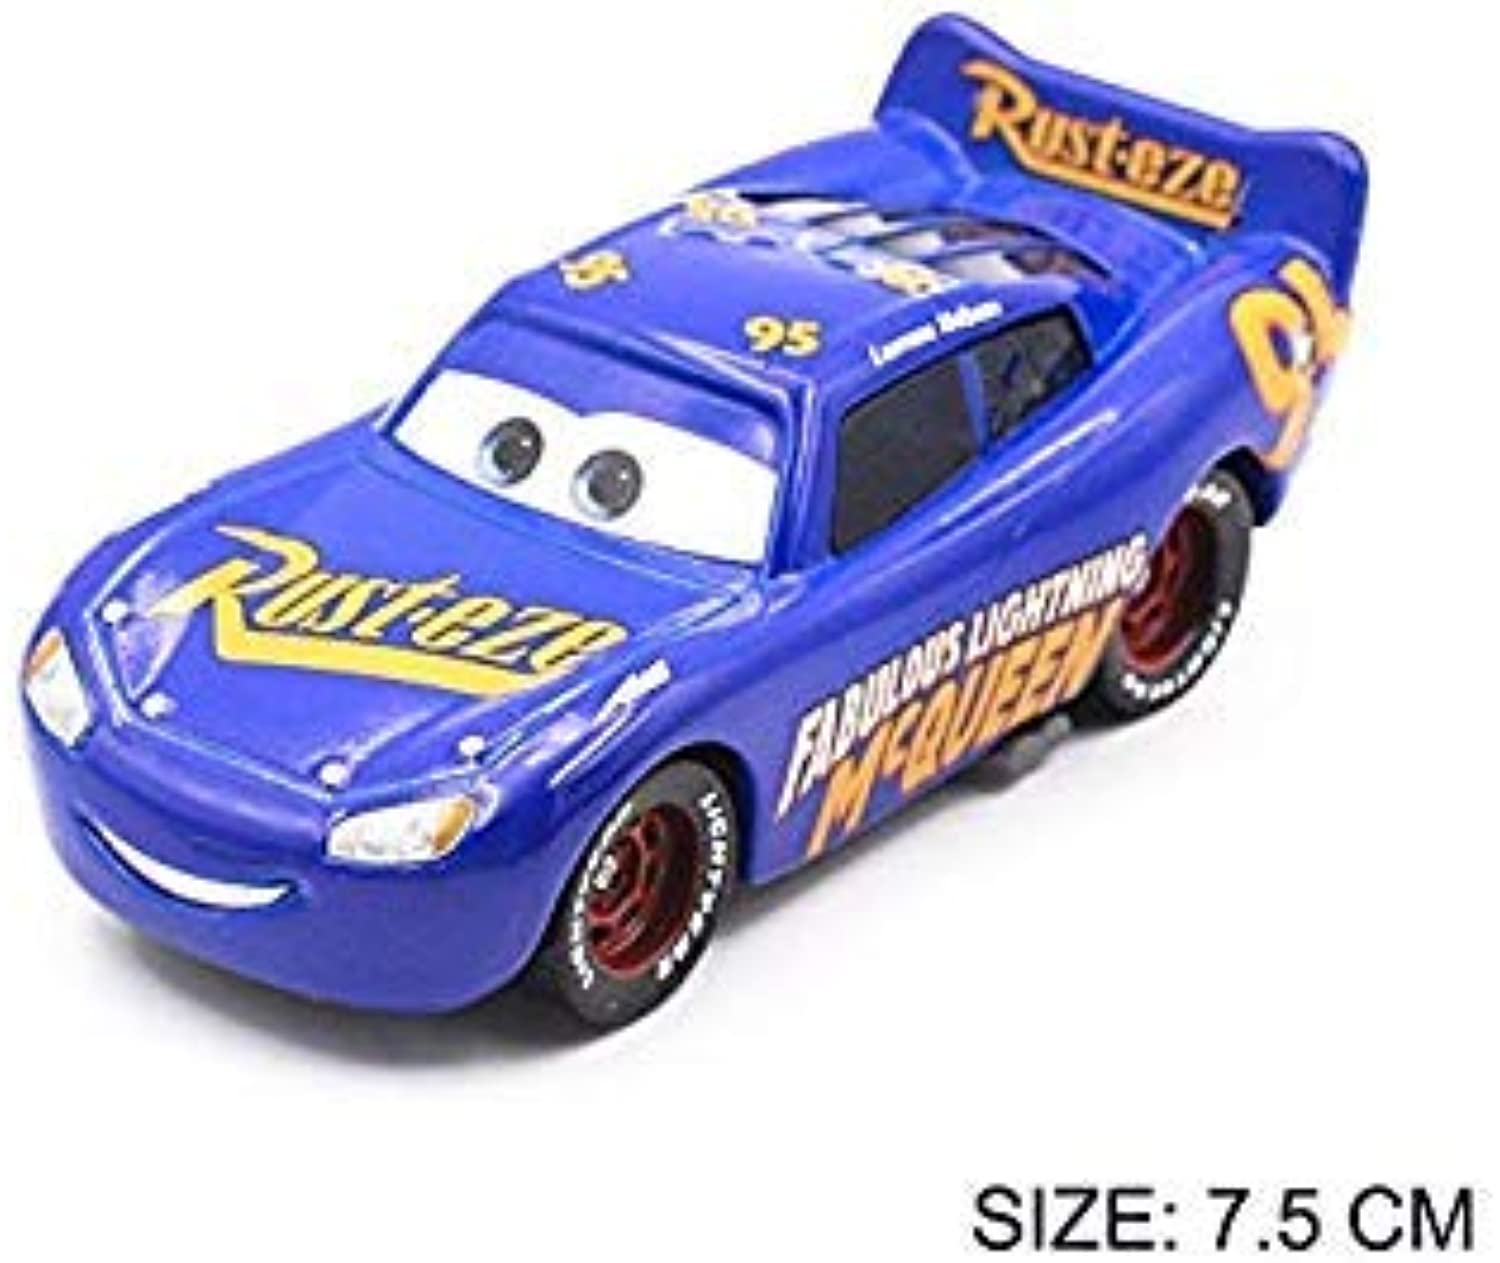 27 Style Pixar Cars 3 Black Storm Jackson Mater Vehicle 1 55 Diecast Metal Alloy Toys Model Car Birthday Gift for Kids bluee